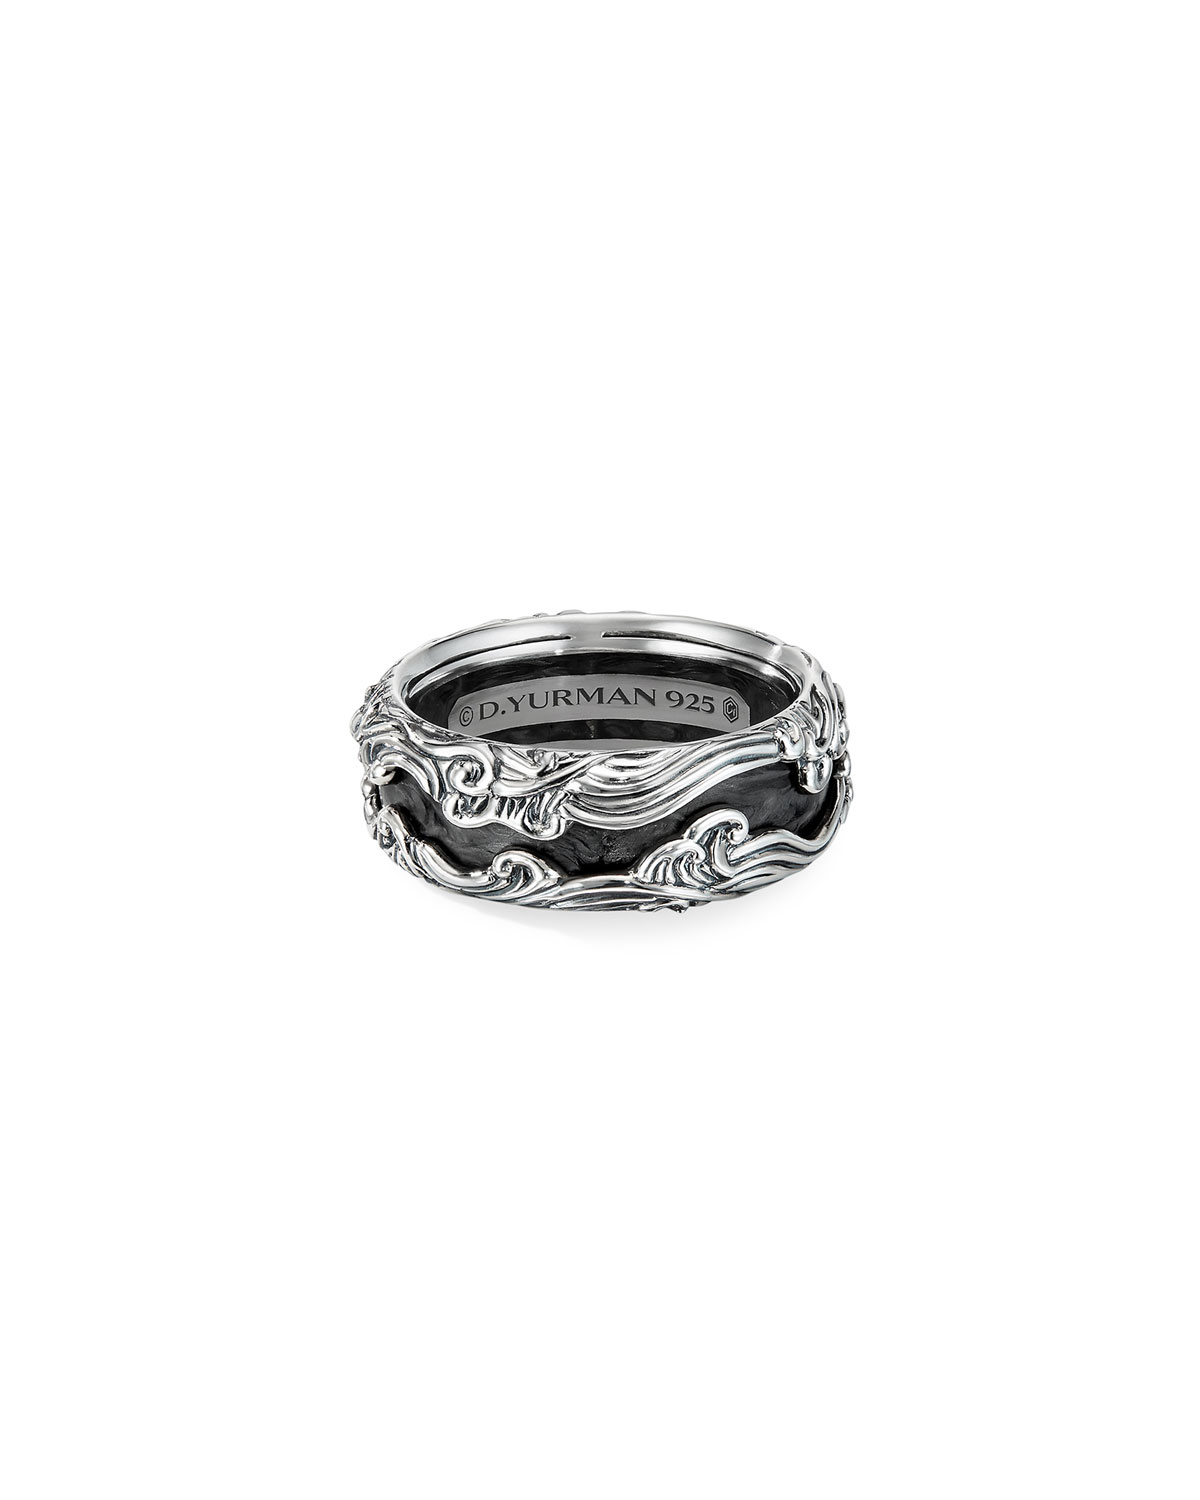 David Yurman Men's Waves Sterling Silver Band Ring, Size 9-12